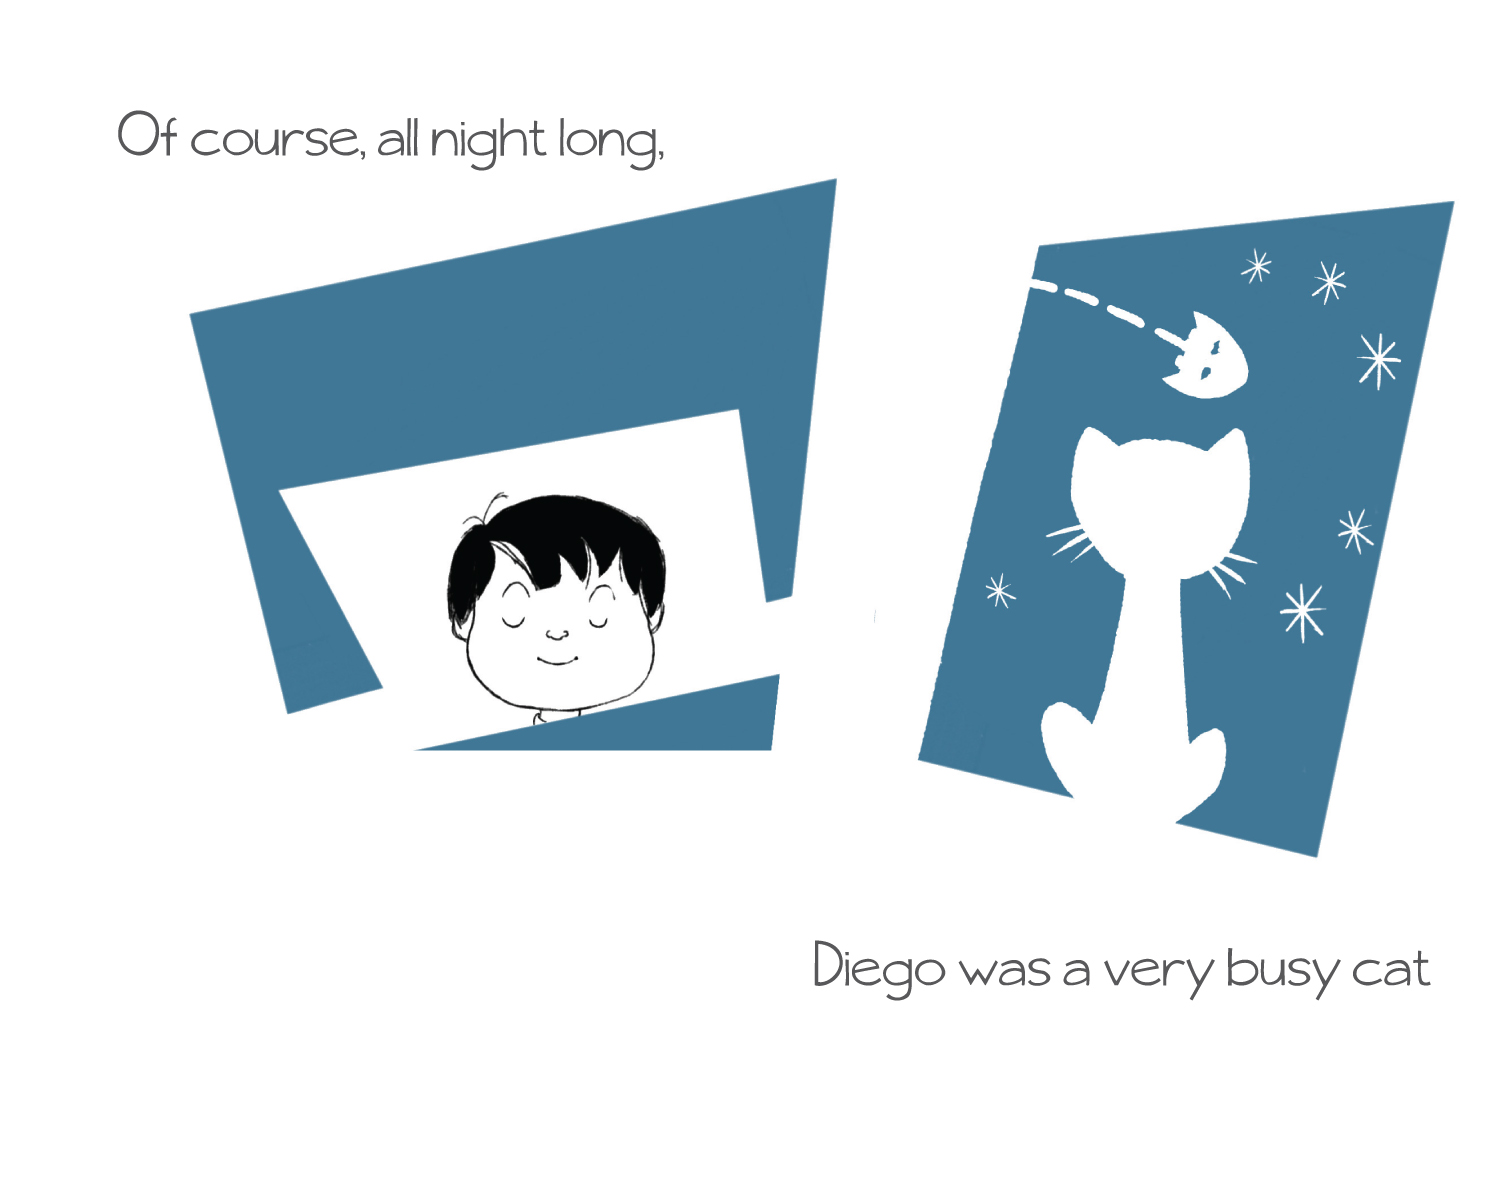 Of course, all night long, Diego was a very busy cat.